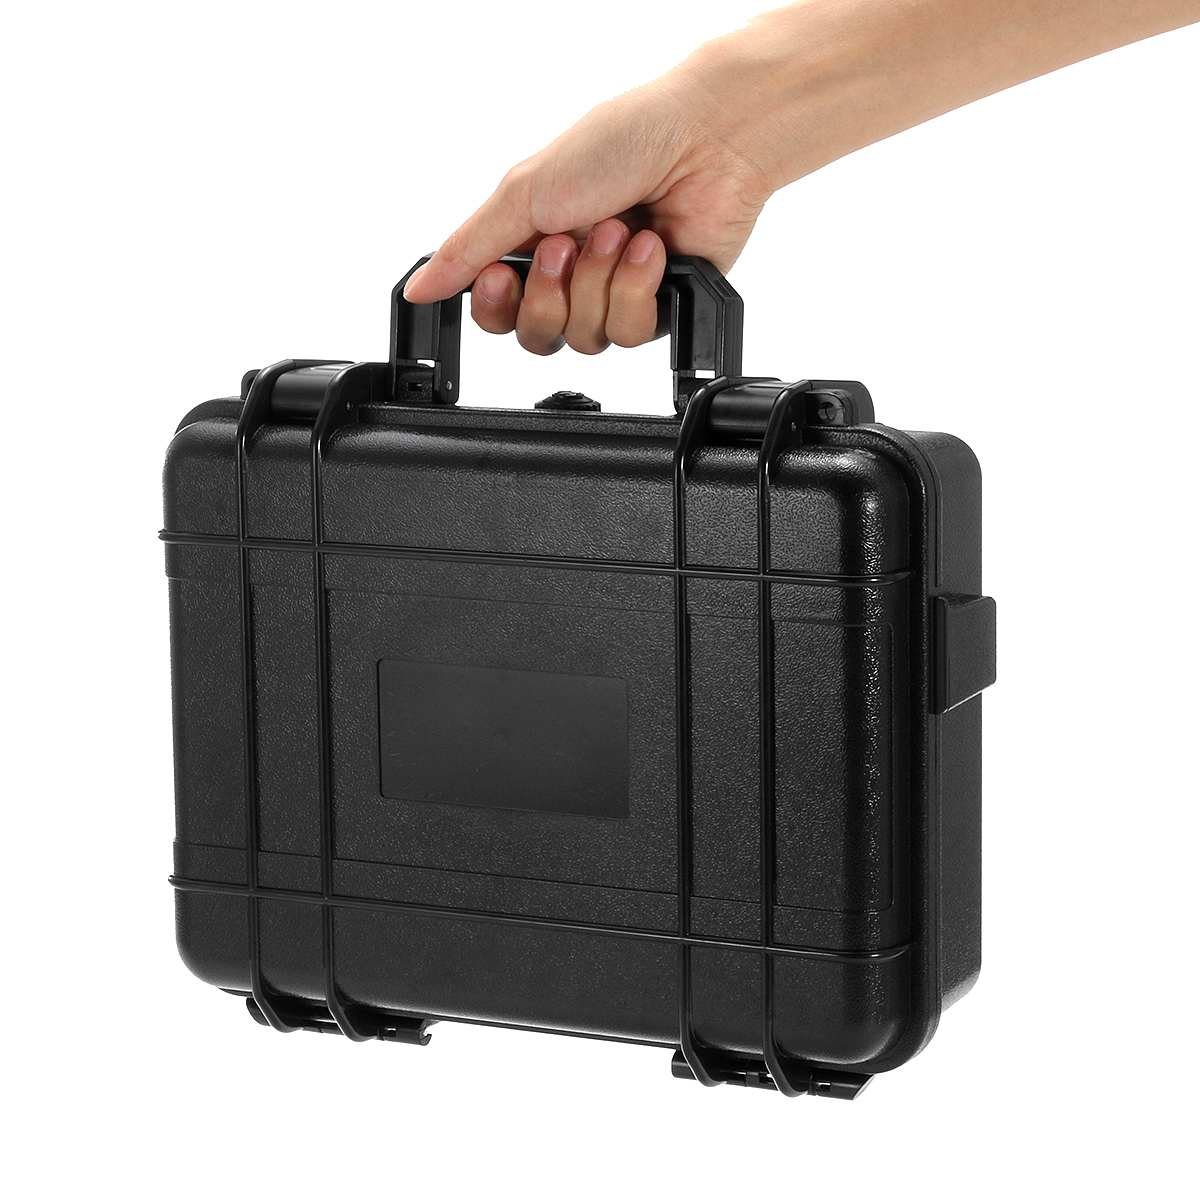 3 Sizes Waterproof Hard Carry Tool Case Plastic Toolbox Equipment Protective Storage Box Organizer Portable Container Black